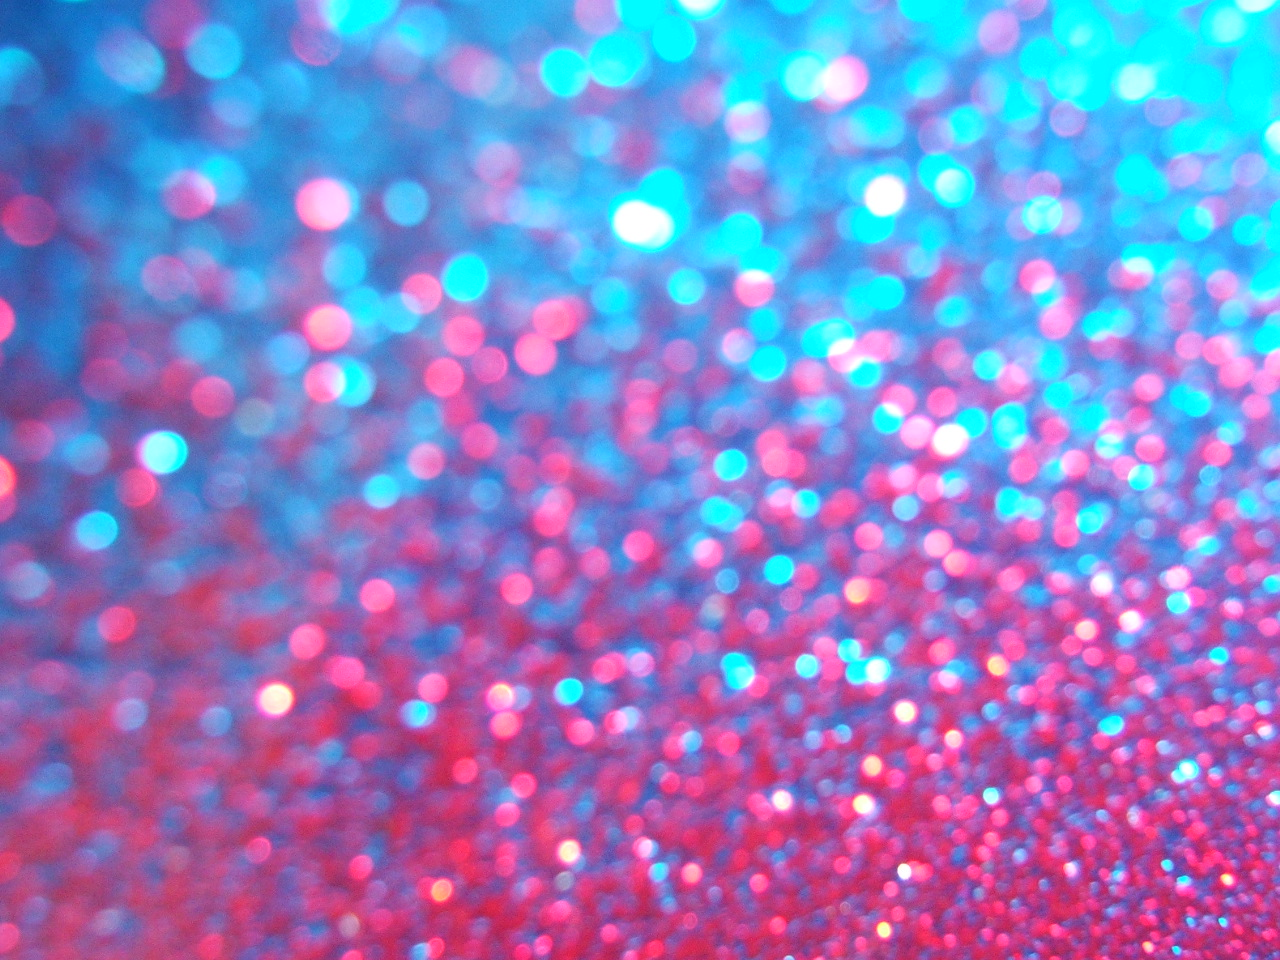 pink glitter wallpaper |Funny & Amazing Images